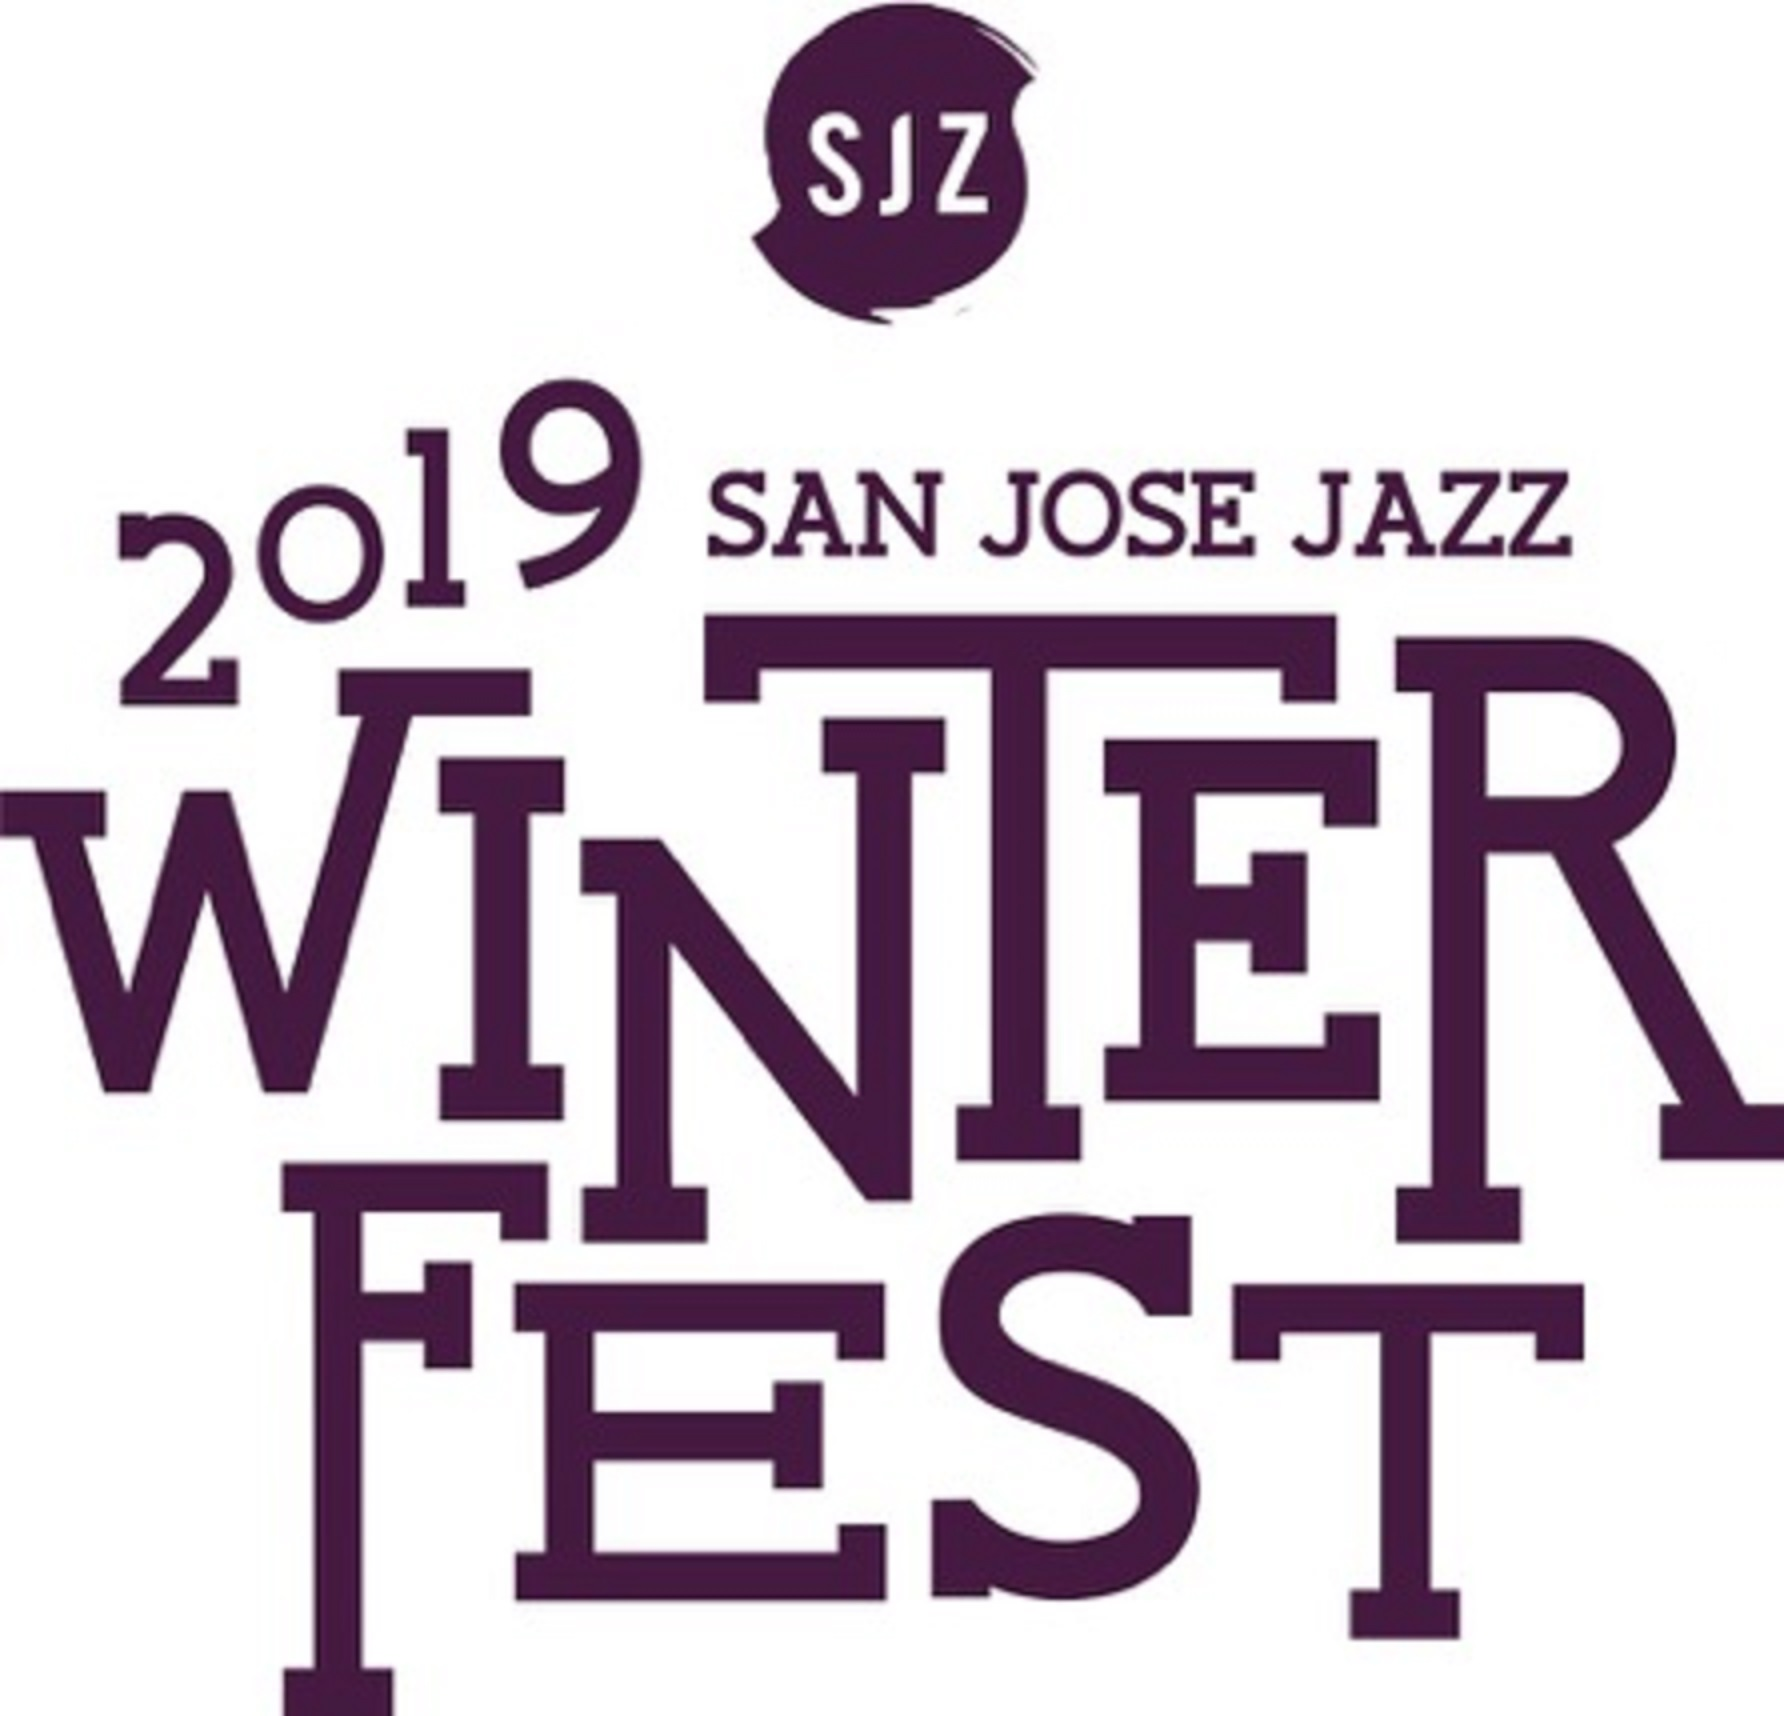 San Jose Jazz Winter Fest 2019 Lineup Announced